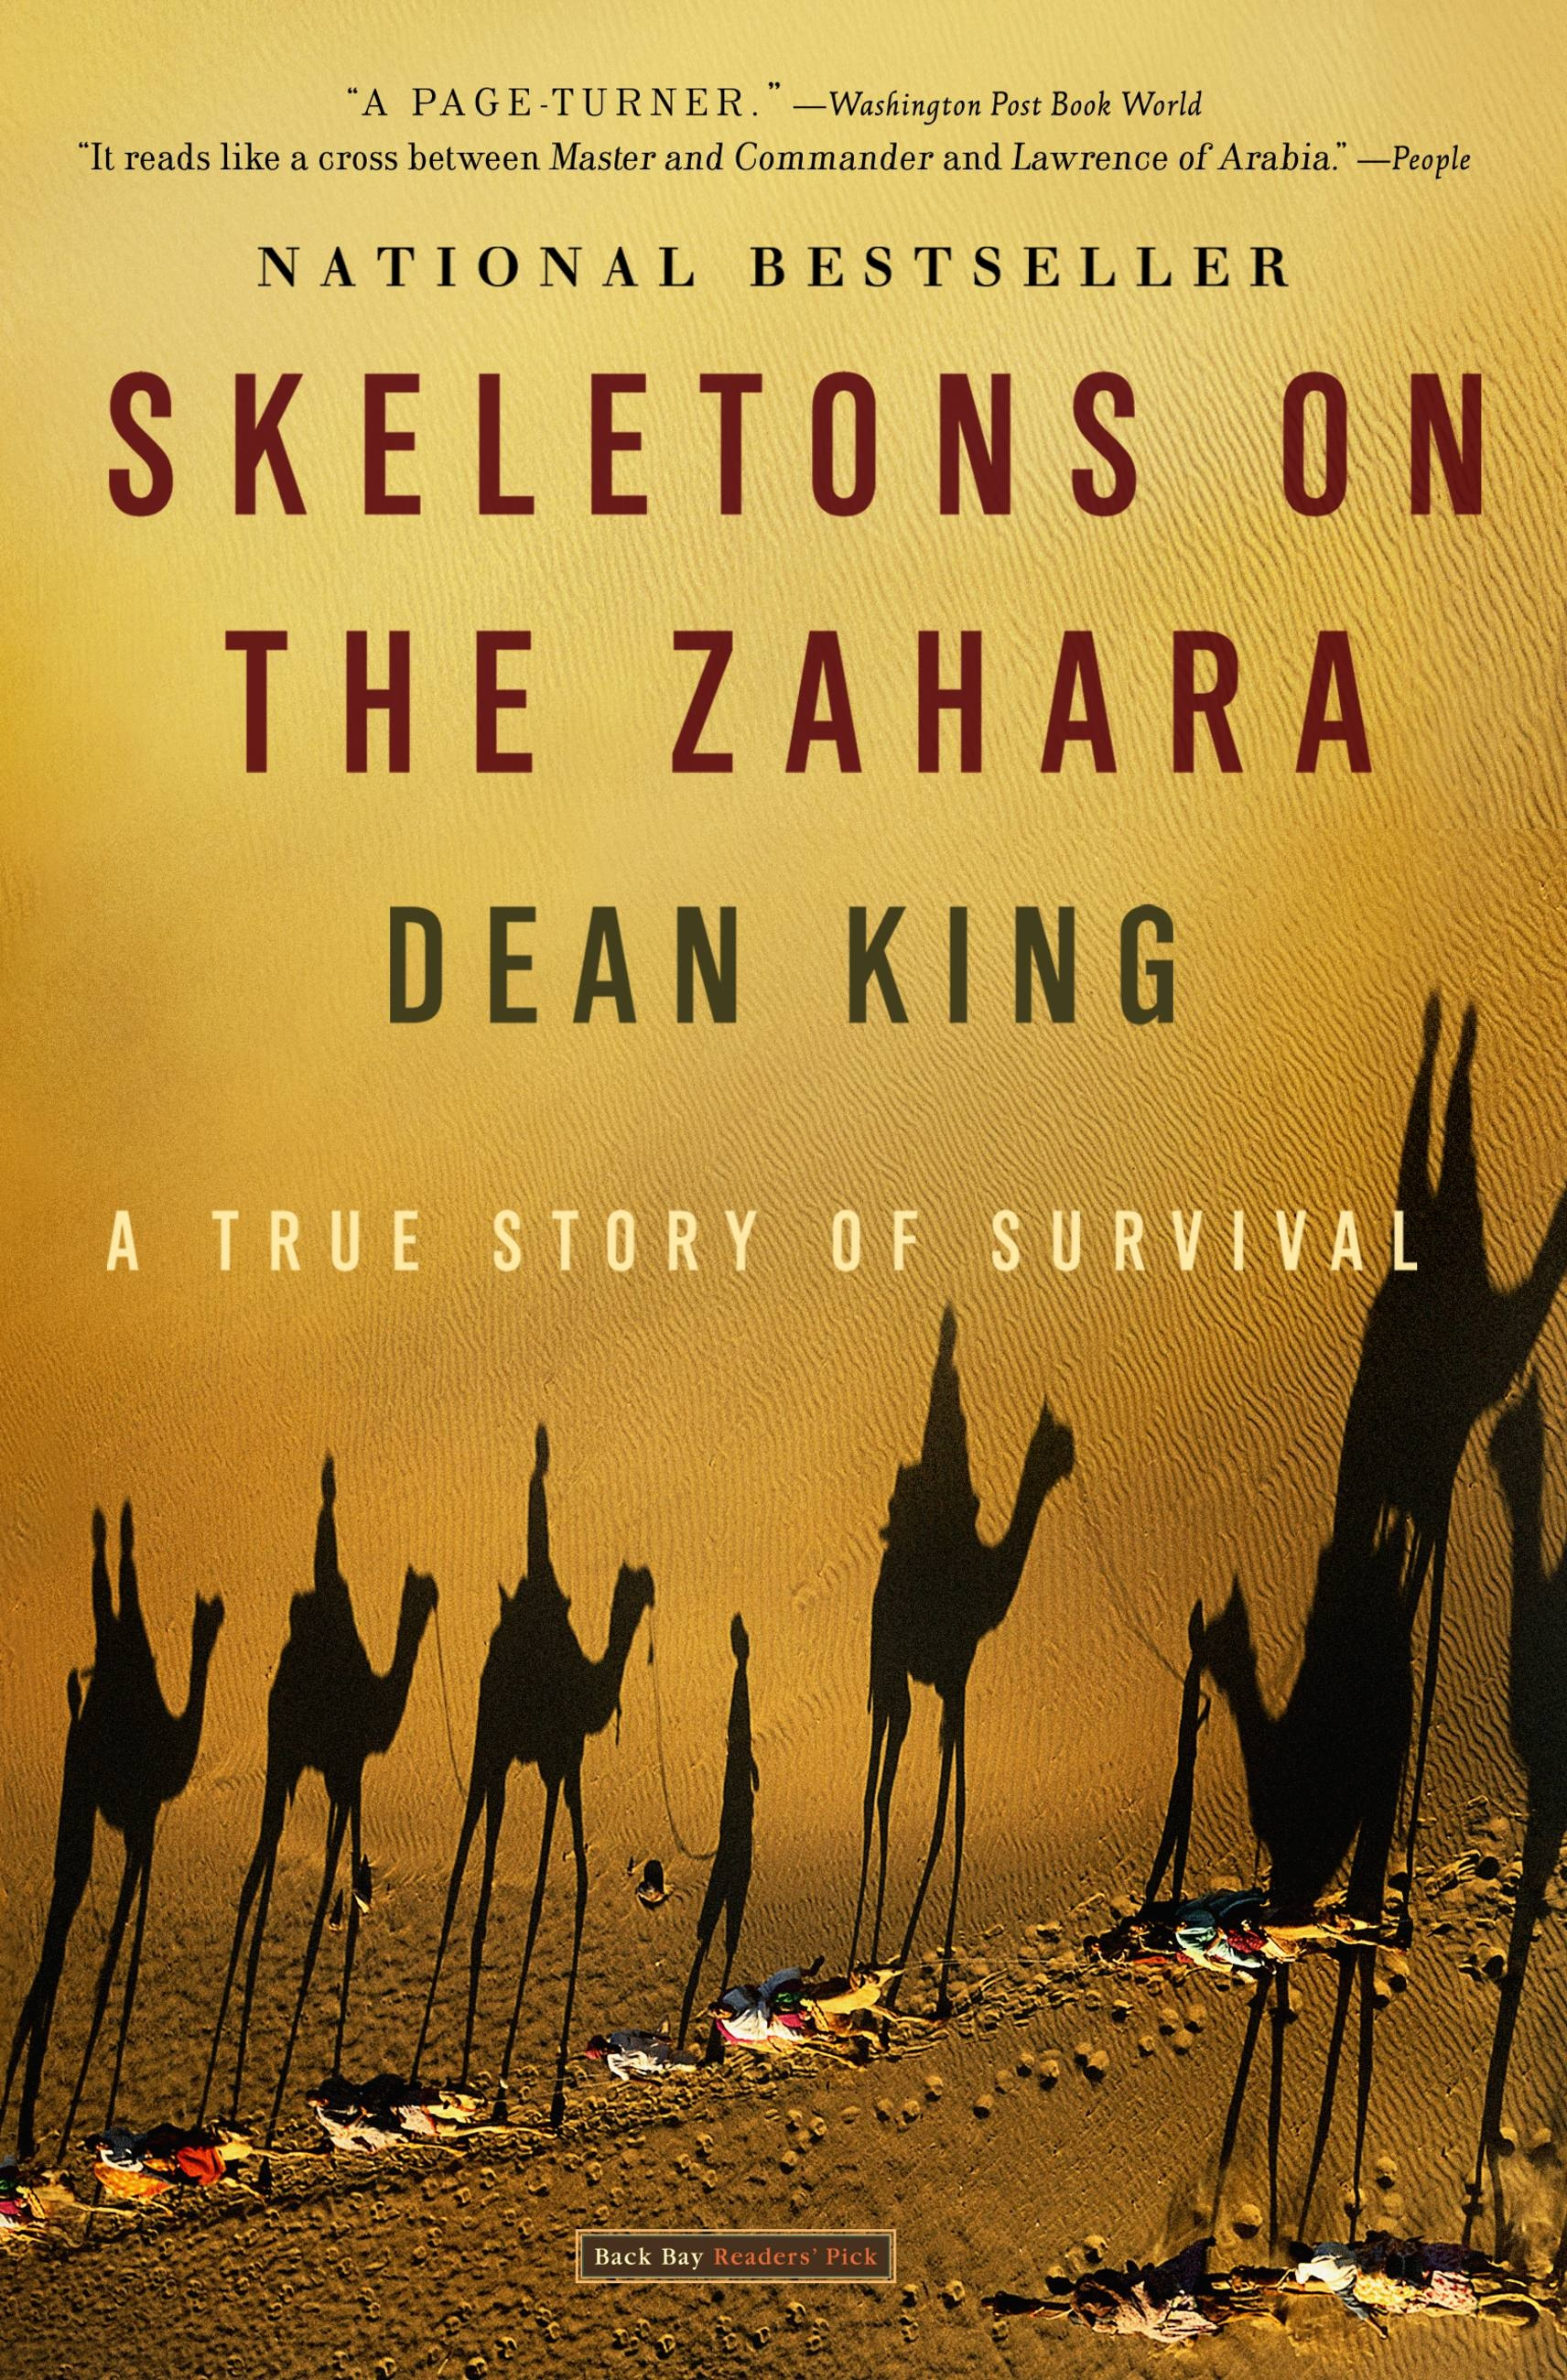 Skeletons on the Zahara